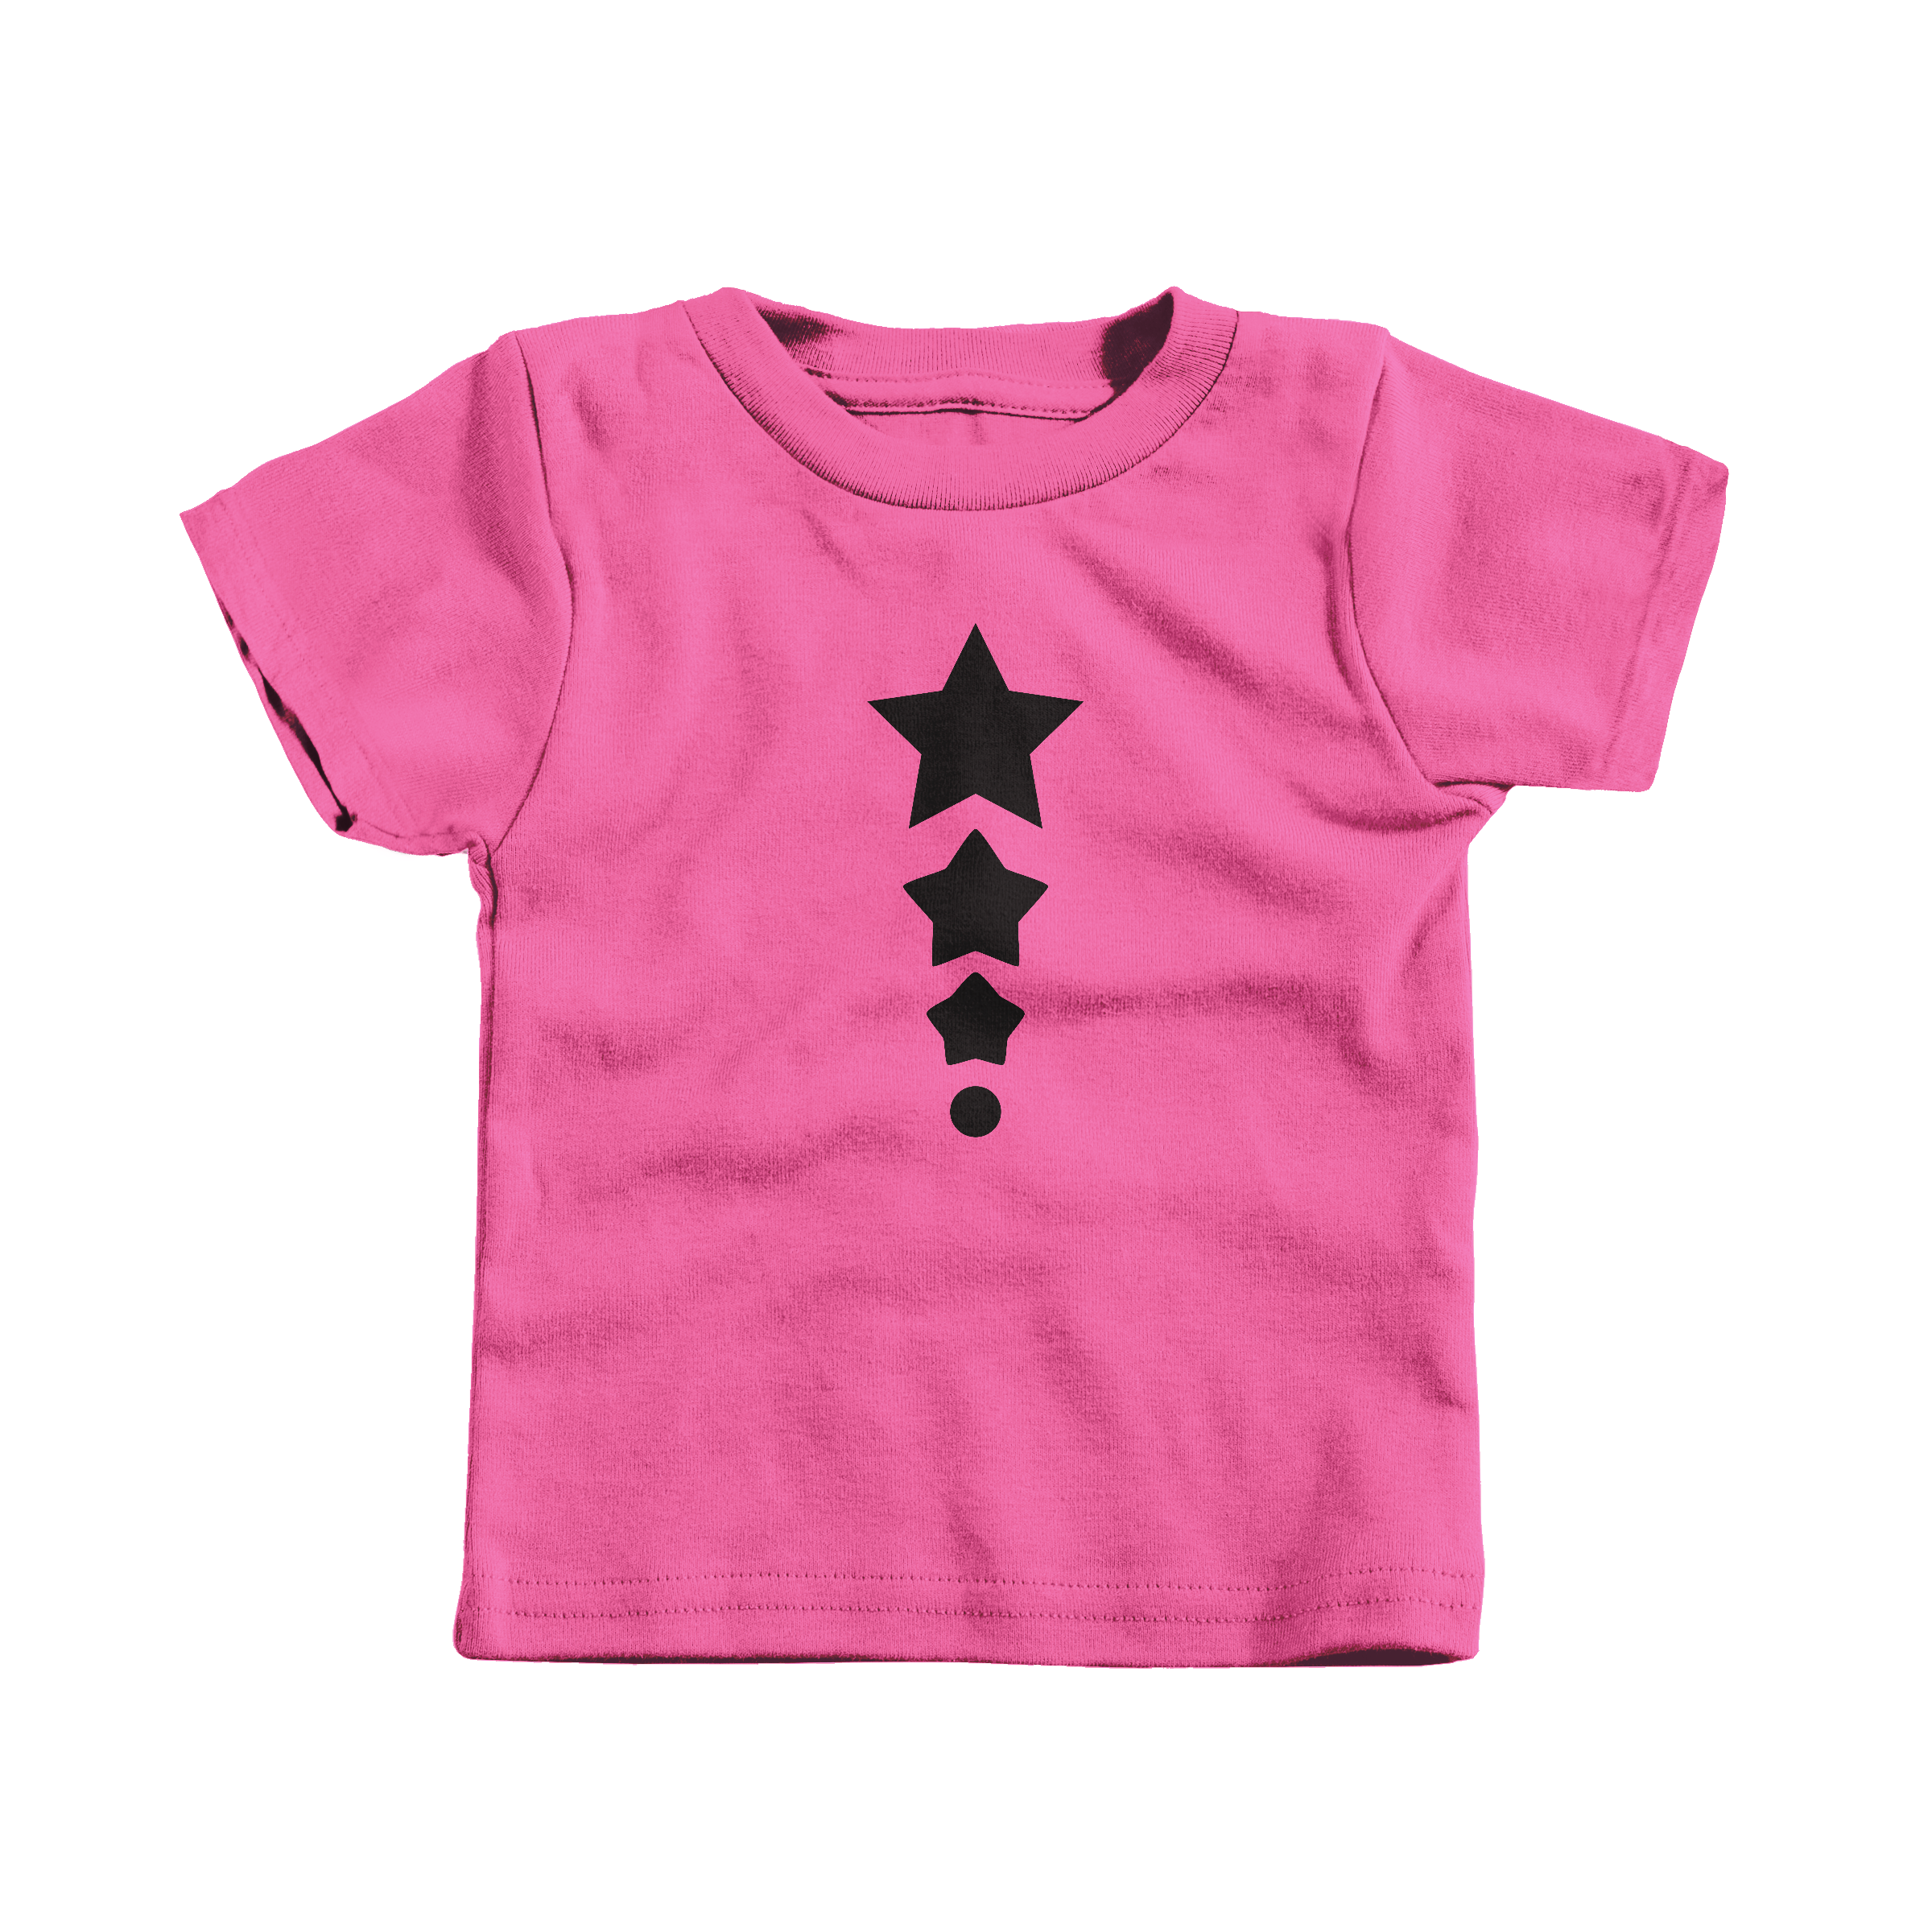 Becoming a Star Hot Pink (T-Shirt)